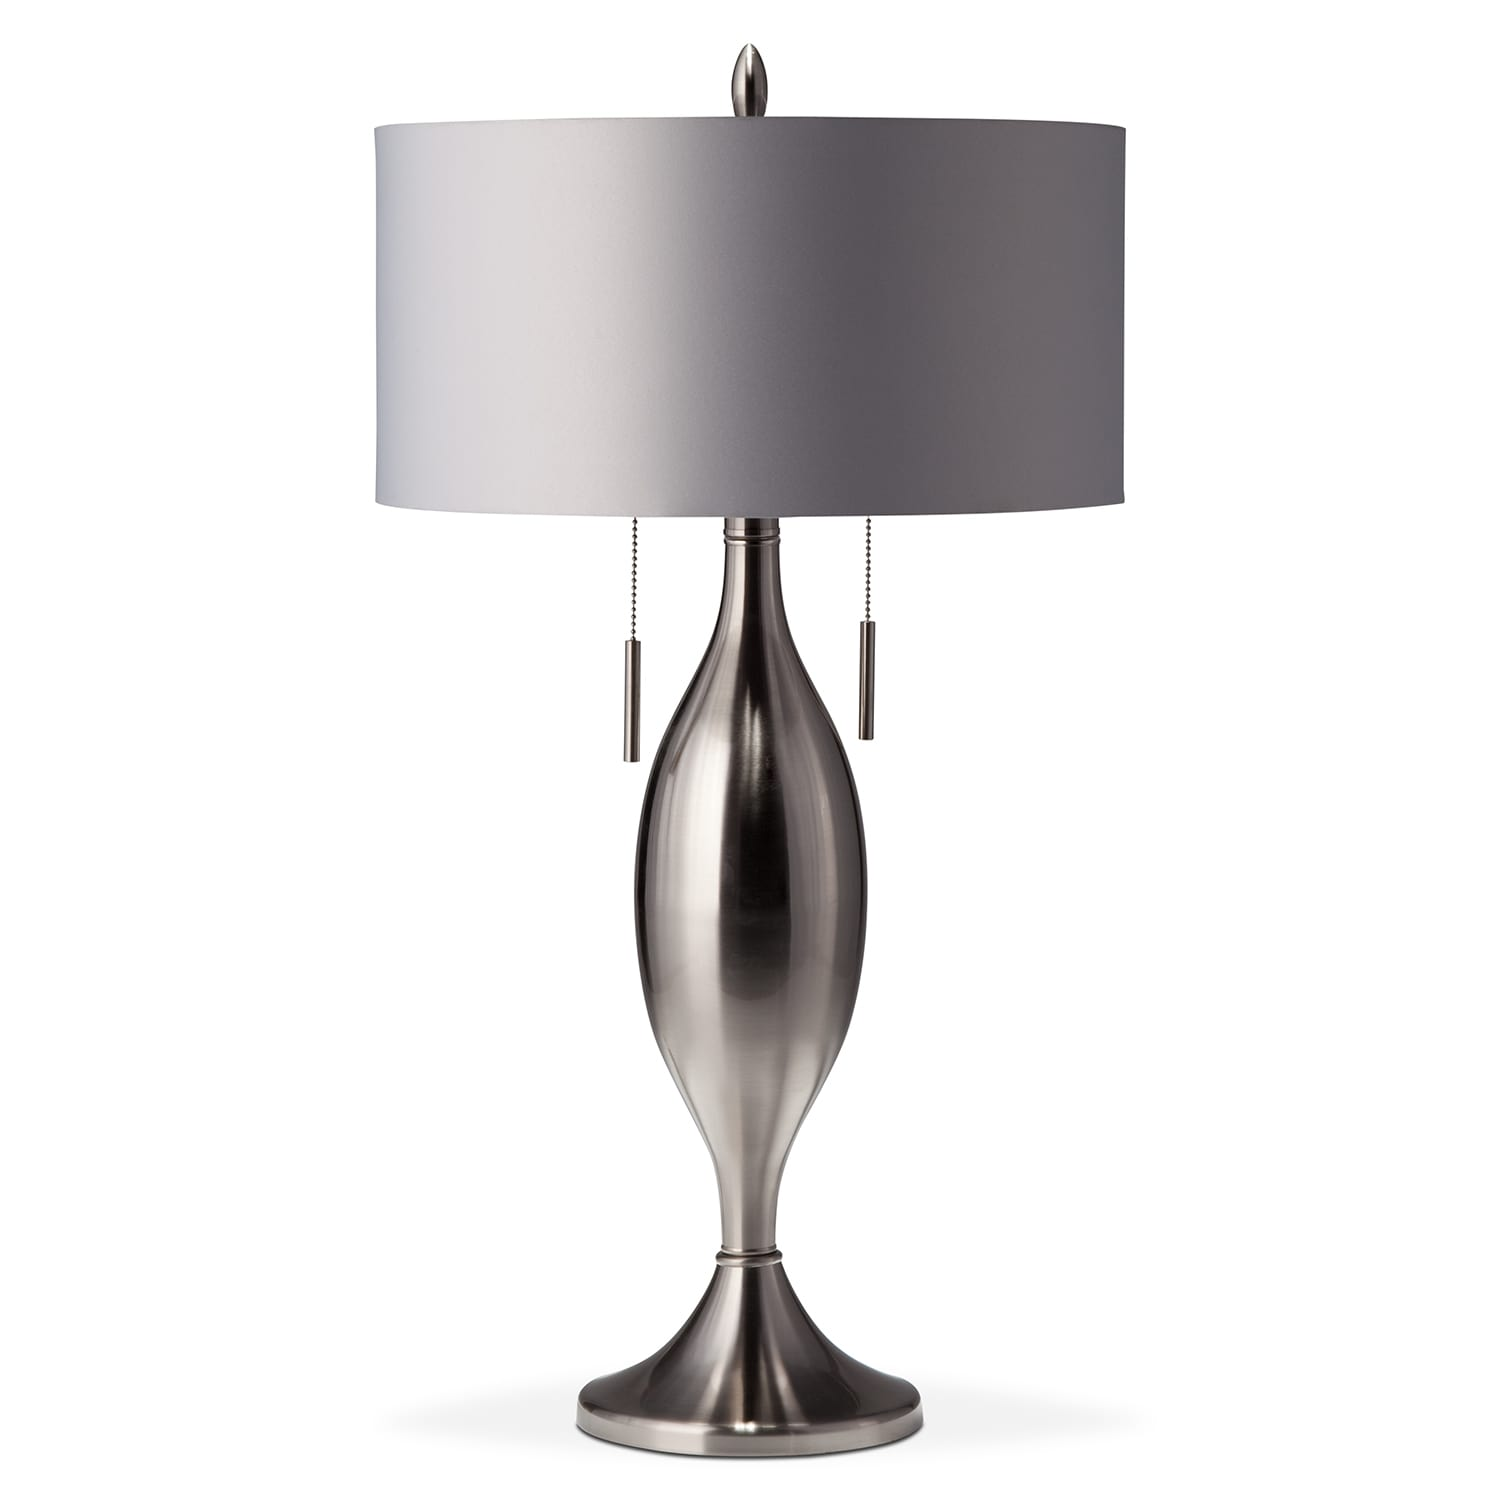 Home Accessories - Silver Tassel Table Lamp